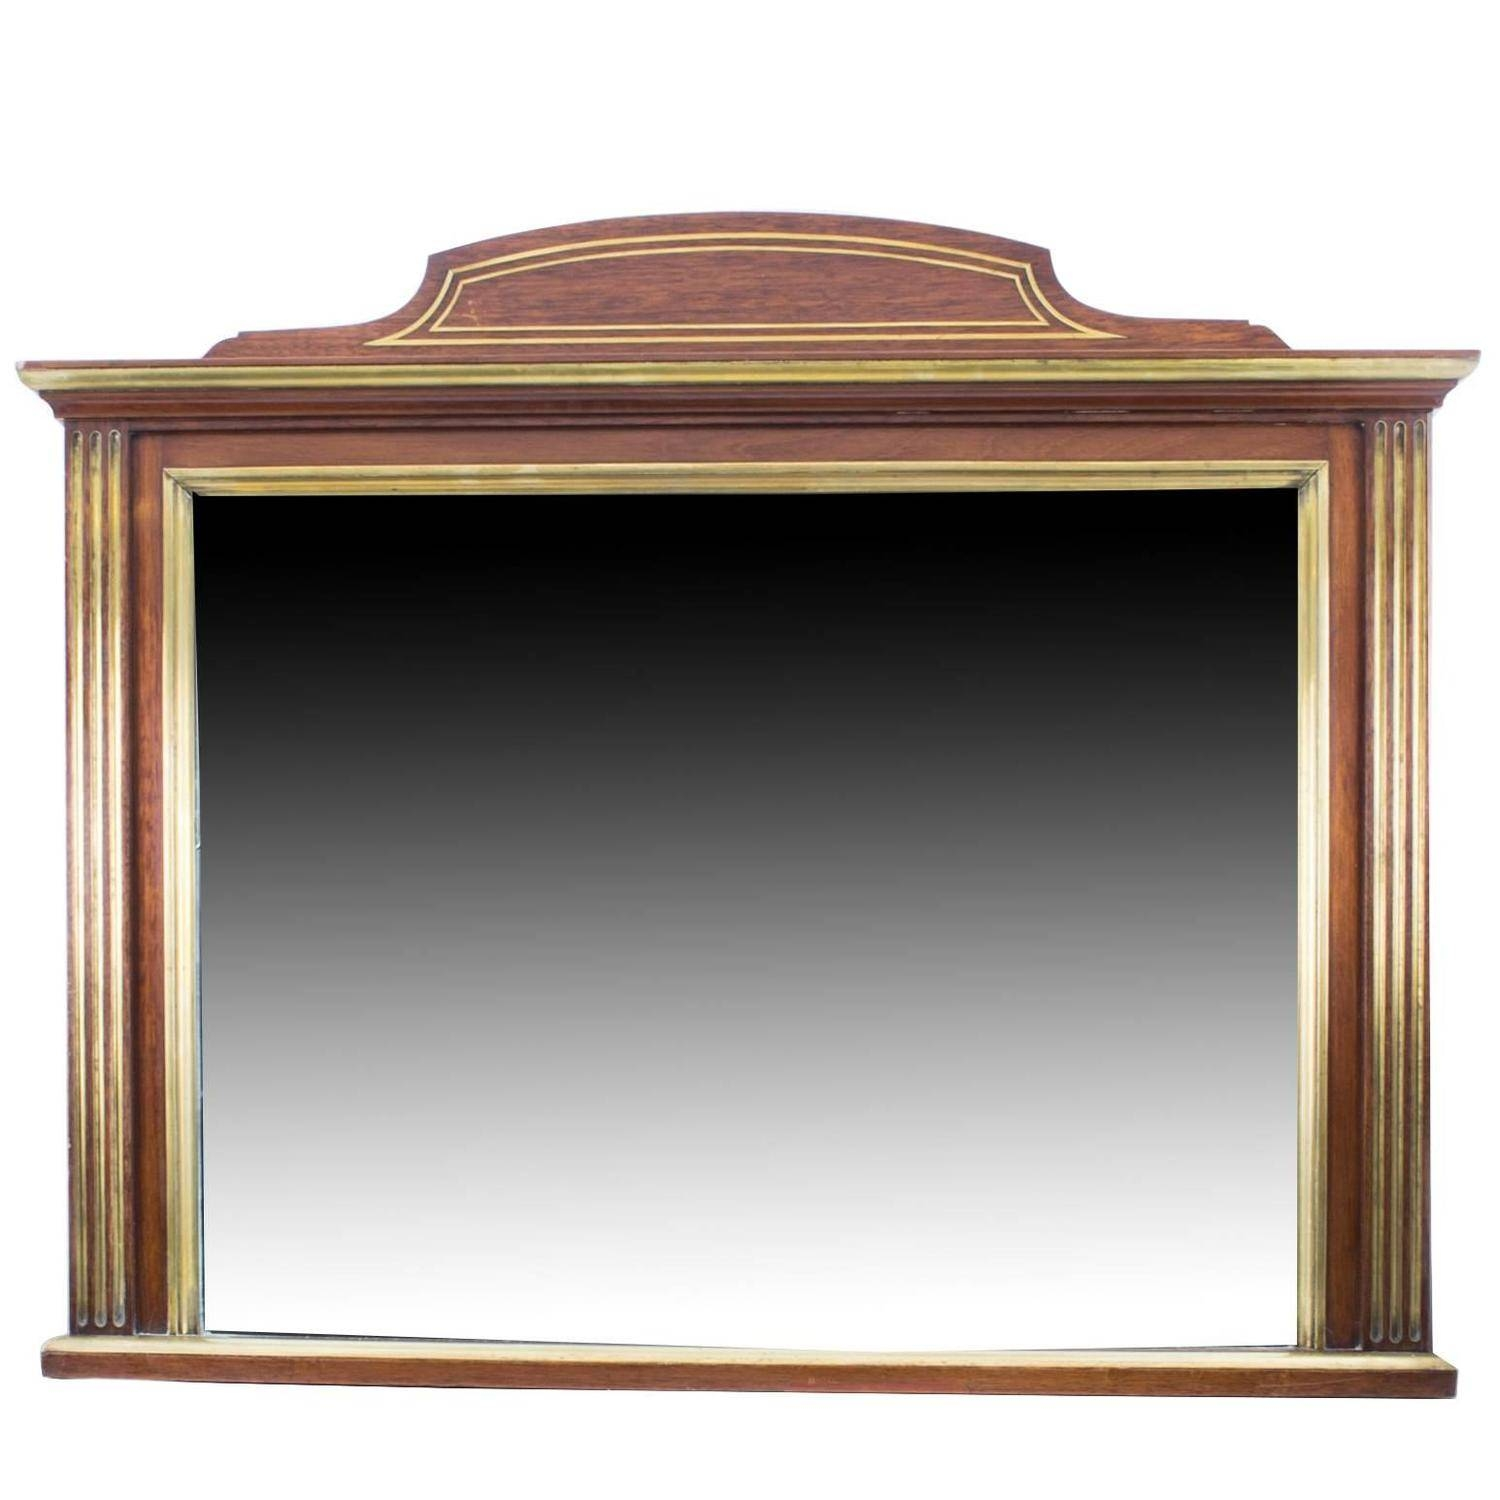 Antique Mahogany Brass Inlaid Over Mantle Mirror, Circa 1900 For in Vintage Overmantle Mirrors (Image 5 of 25)